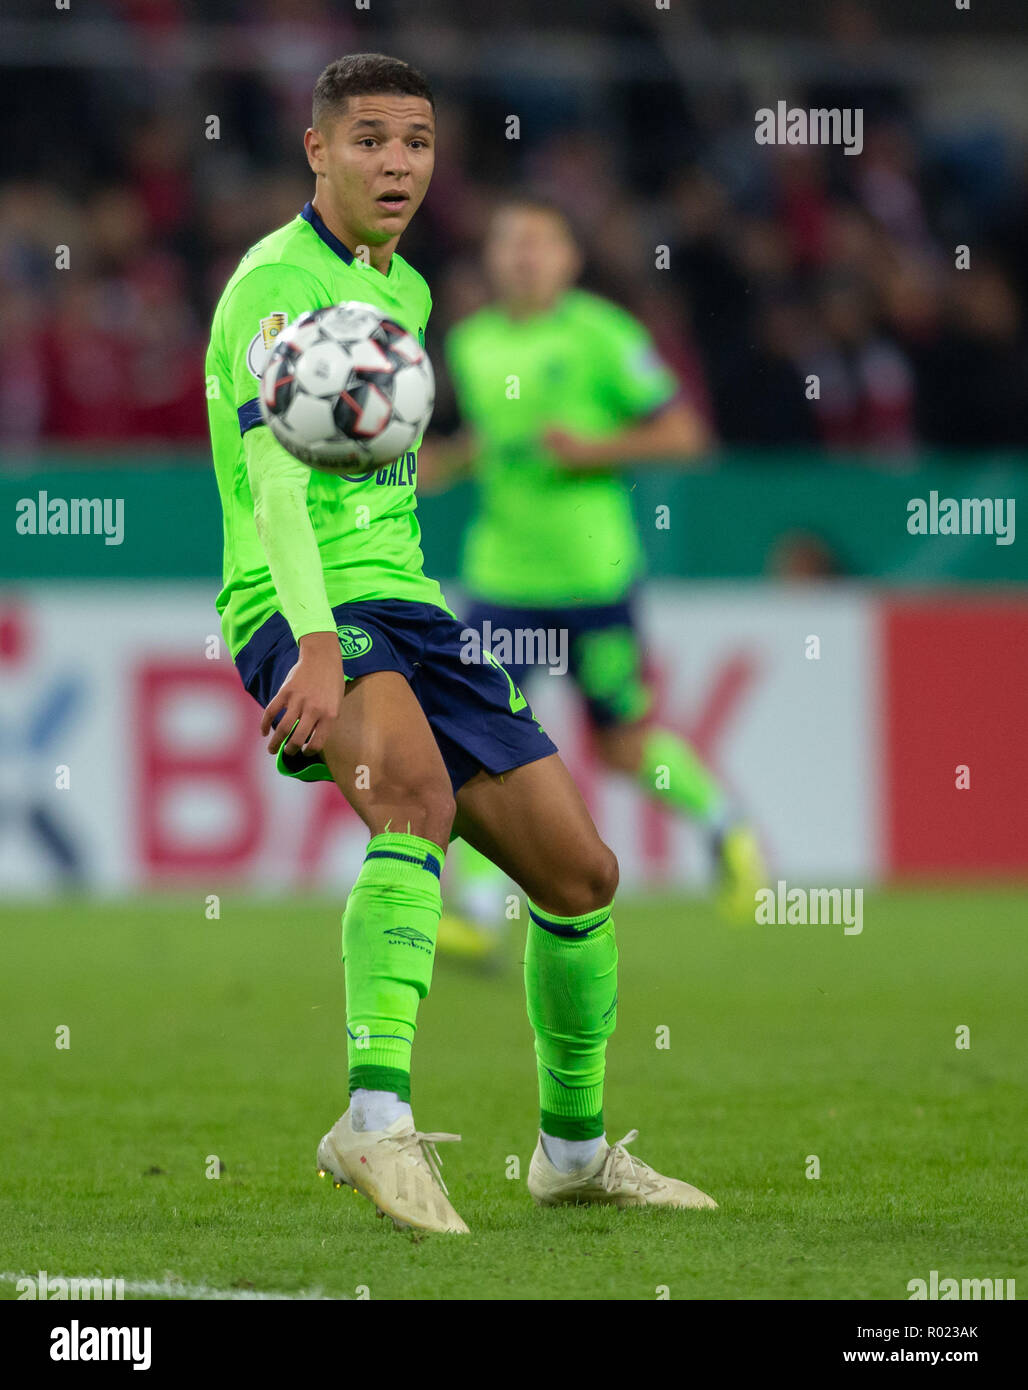 Cologne, Germany October 31 2018, DFB Pokal, FC Koeln - FC Schalke 04: Amine Harit (S04) in action.                 Credit: Juergen Schwarz/Alamy Live News    DFB REGULATIONS PROHIBIT ANY USE OF PHOTOGRAPHS AS IMAGE SEQUENCES AND/OR QUASI-VIDEO Credit: Juergen Schwarz/Alamy Live News - Stock Image